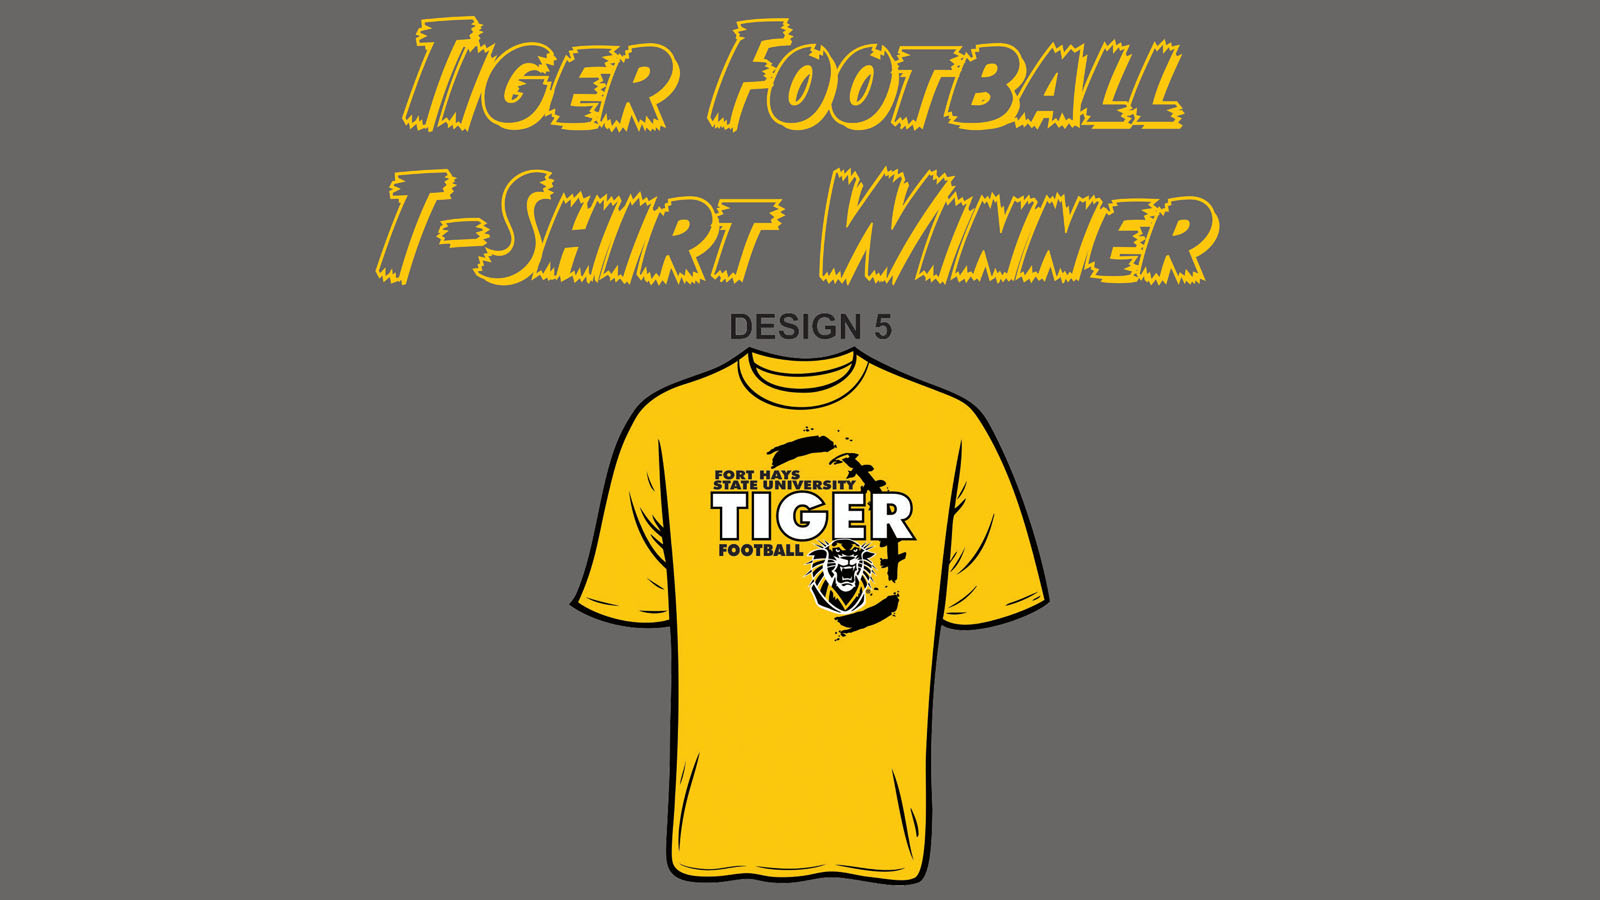 Fans Select Design 5 In 2018 Tiger Football T Shirt Voting Contest